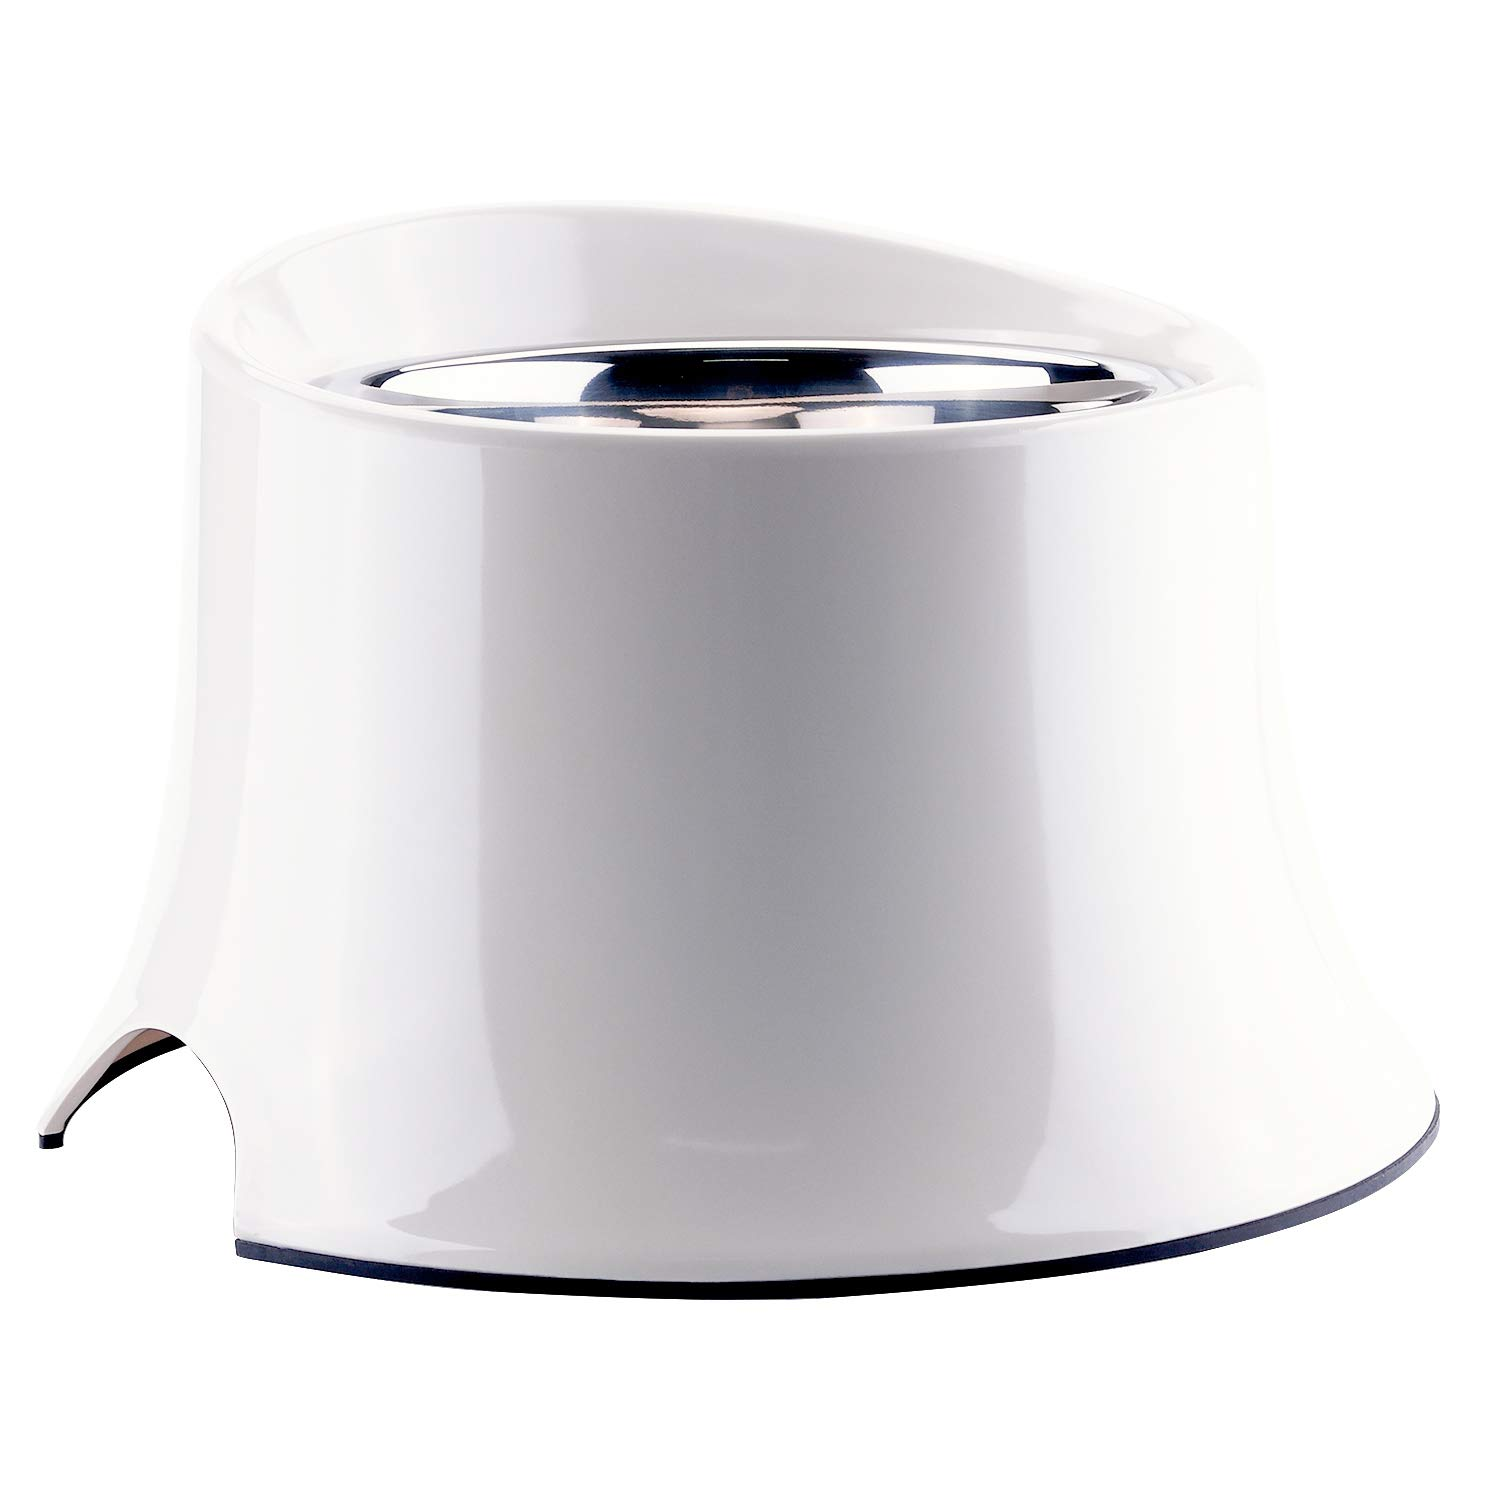 Super Design Elevated Dog Bowl Raised Dog Feeder for Food and Water 4 Cup Cream White